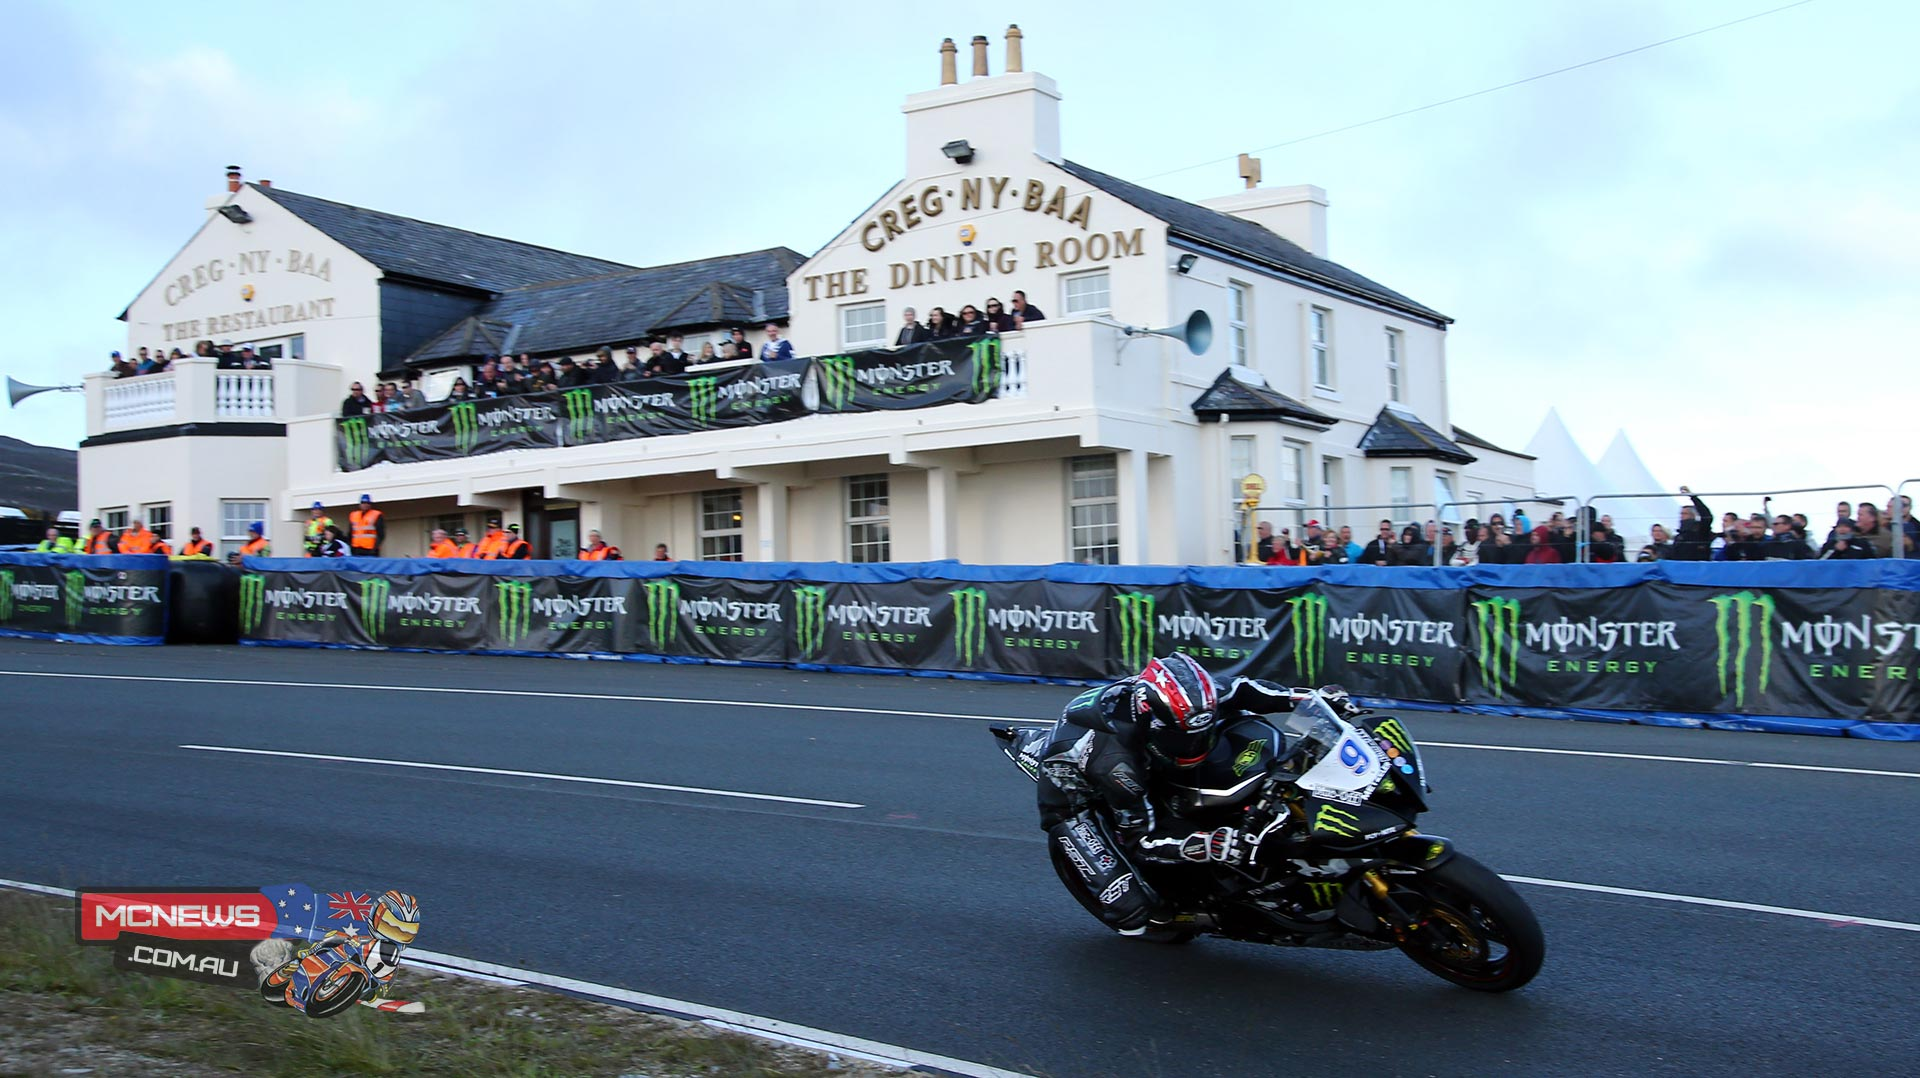 Ian Hutchinson, riding for Team Traction Control Yamaha, took first place in Monster Energy Supersport Race 2 at the 2015 IOM TT